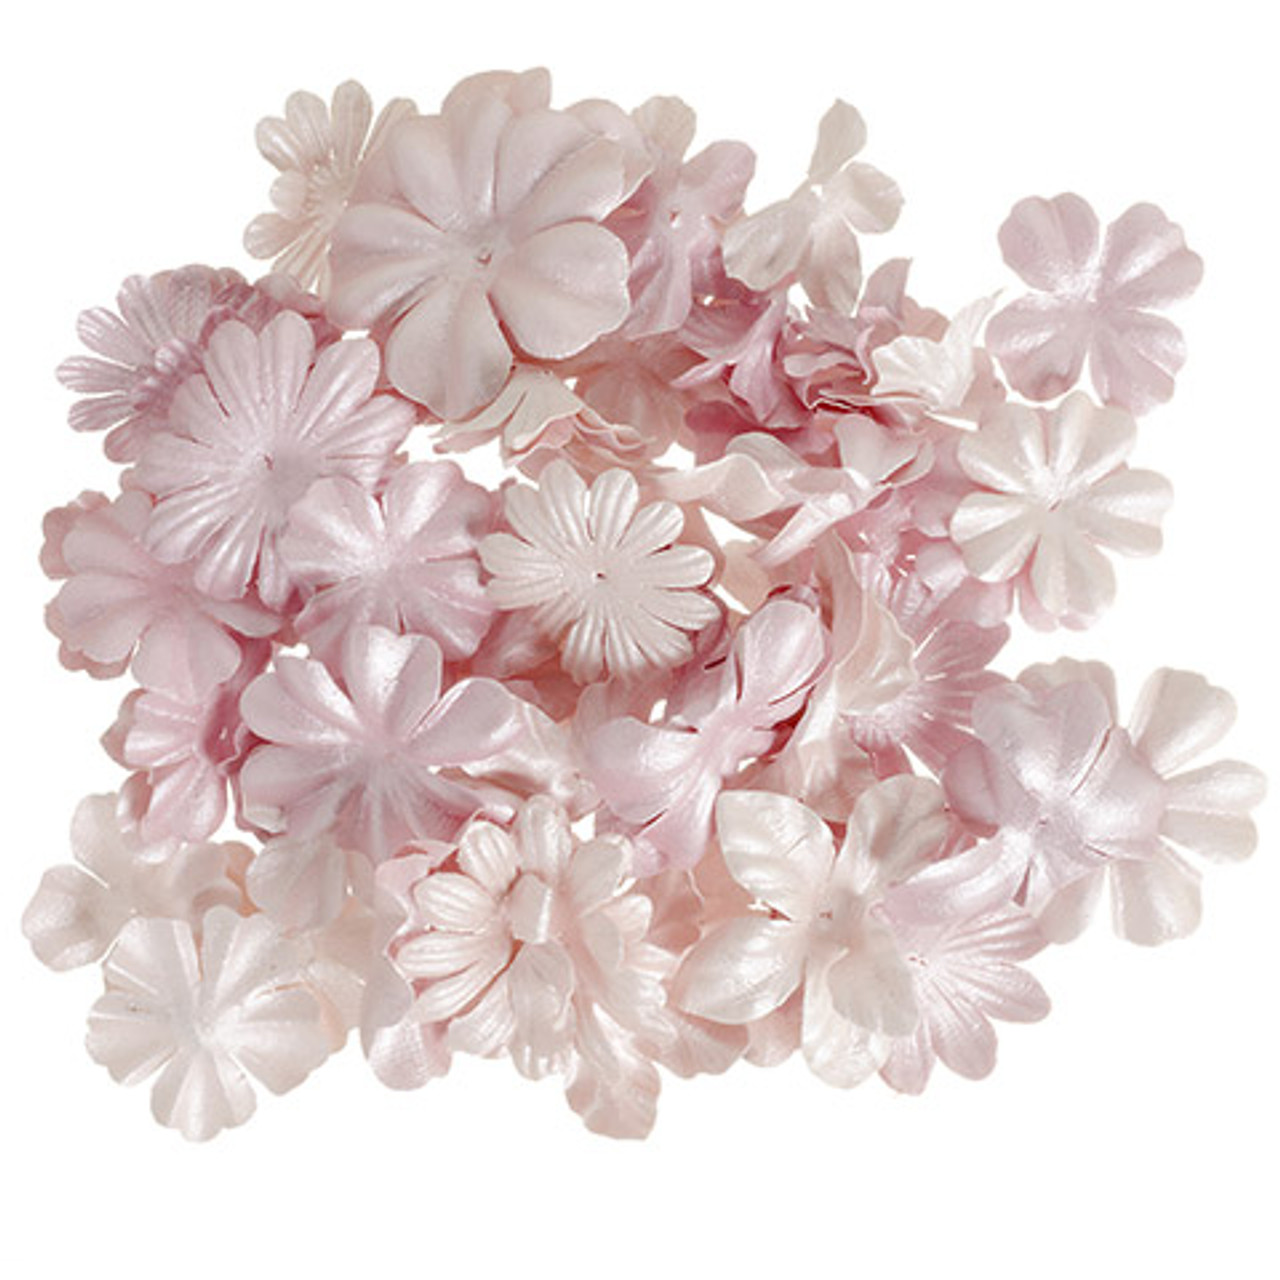 Floral Embellishments Collection Pearlized Pink Petals 1.25 to 1.75 inch Blooms Scrapbook Embellishment by Darice - 65 Pieces